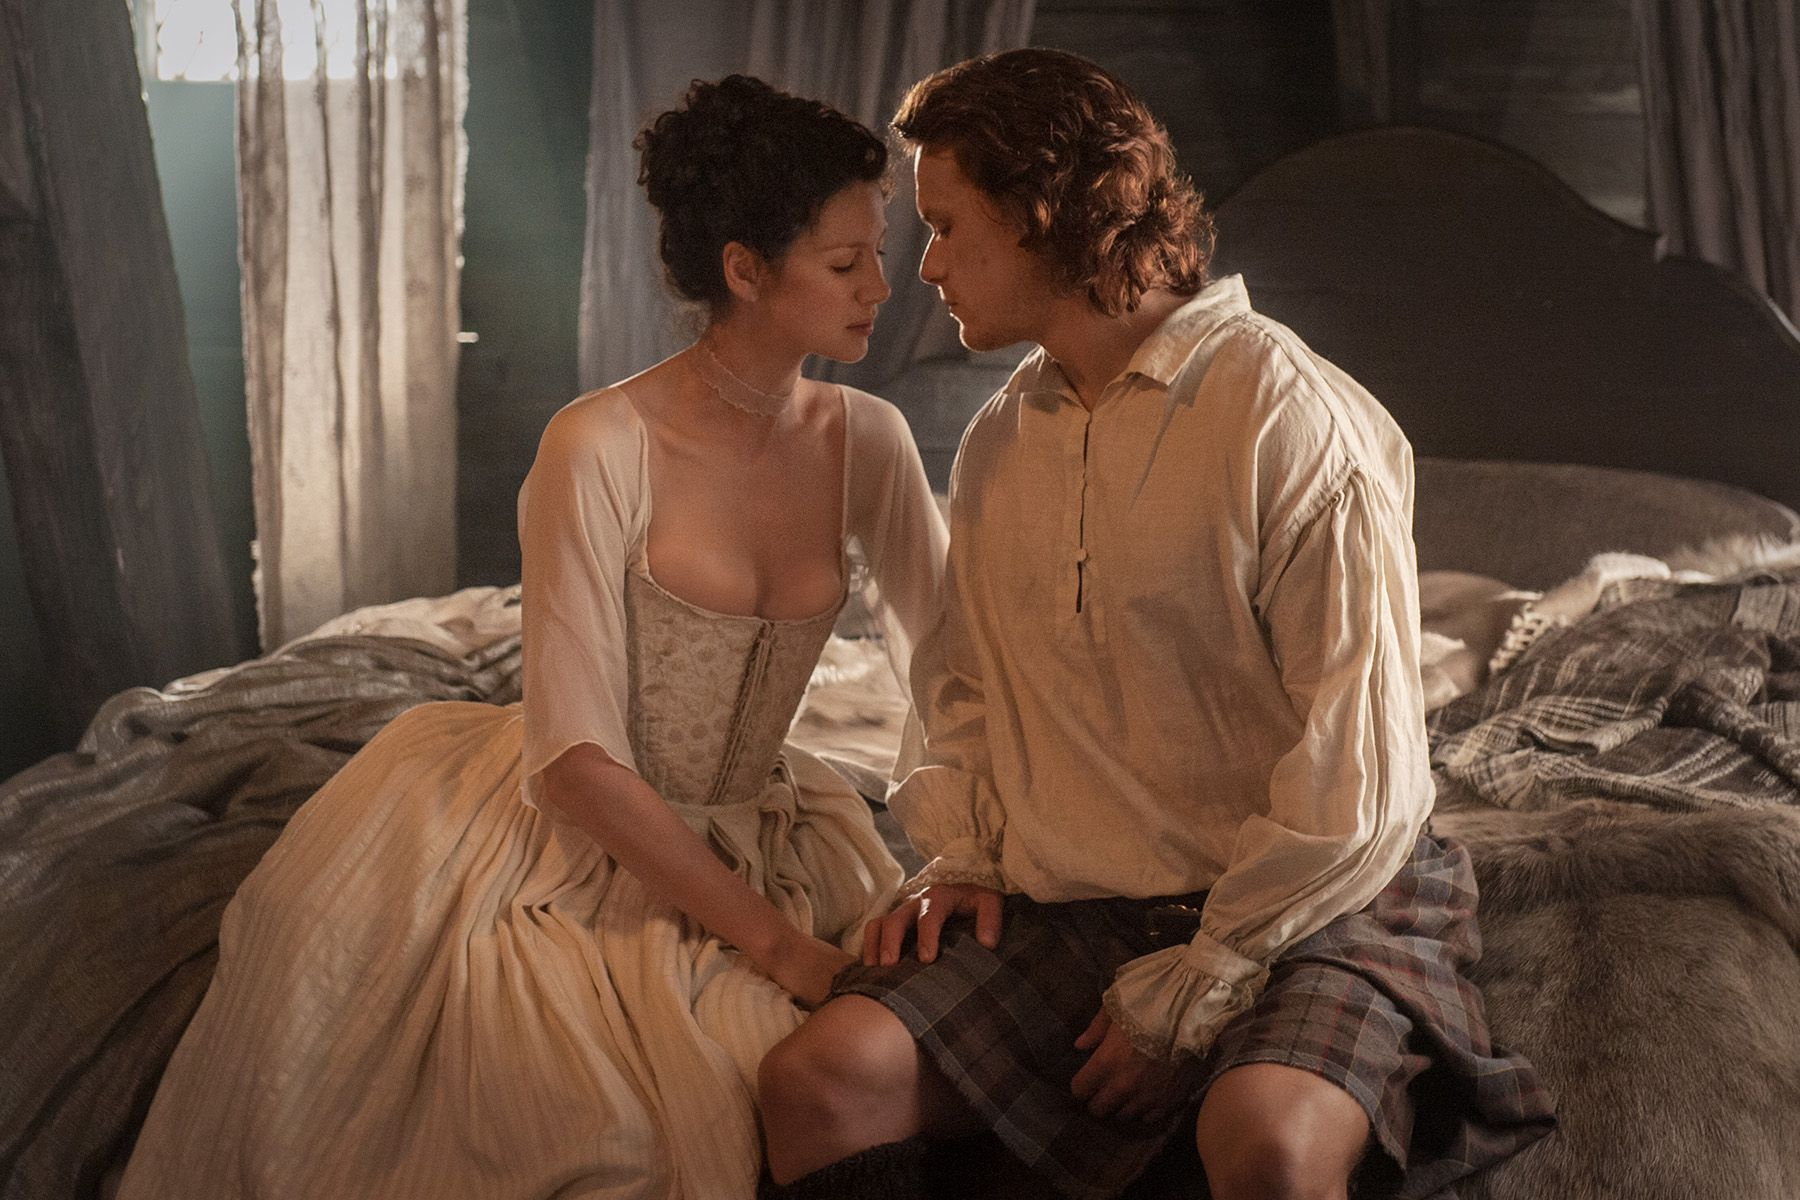 When Will Outlander Be on Netflix? Everything to Know About Seasons 1 and 2